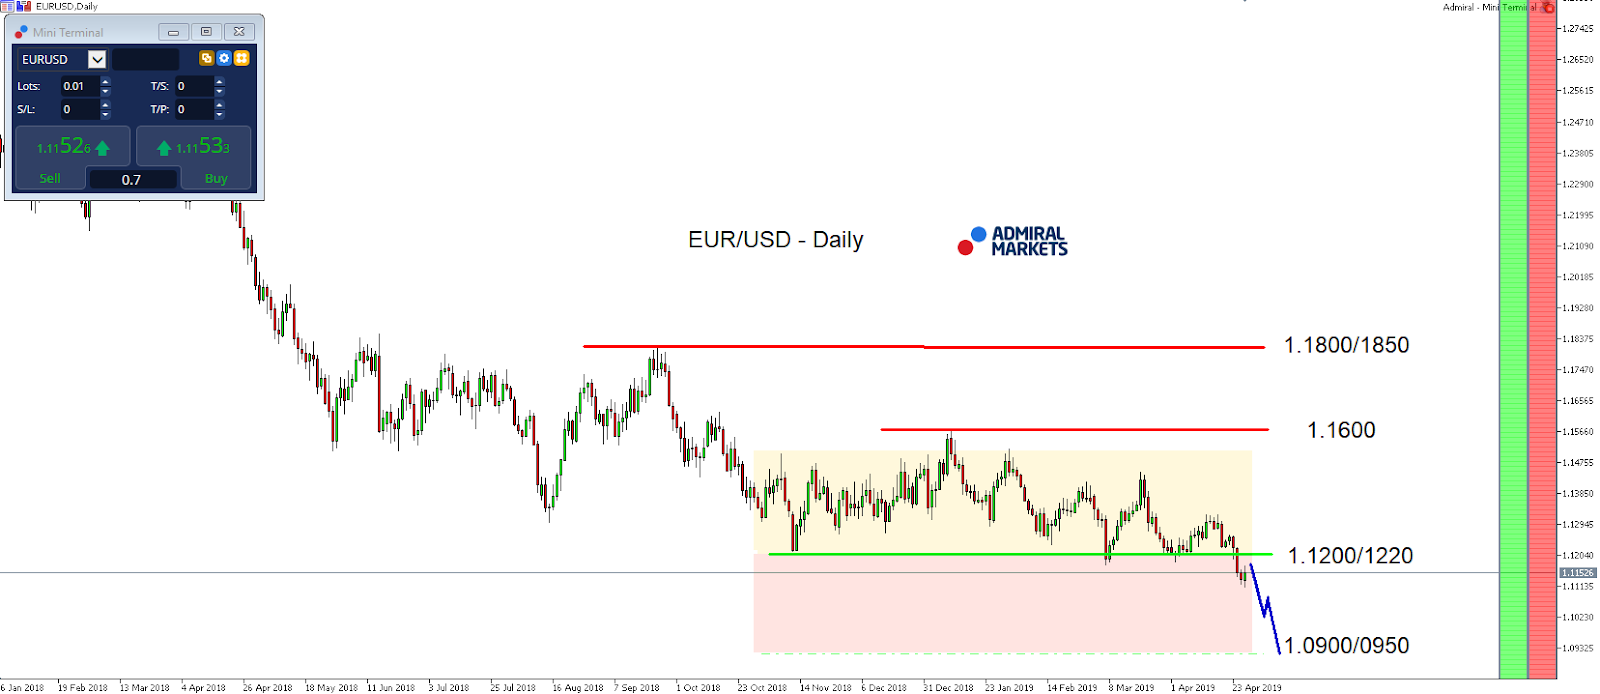 EUR/USD index daily chart